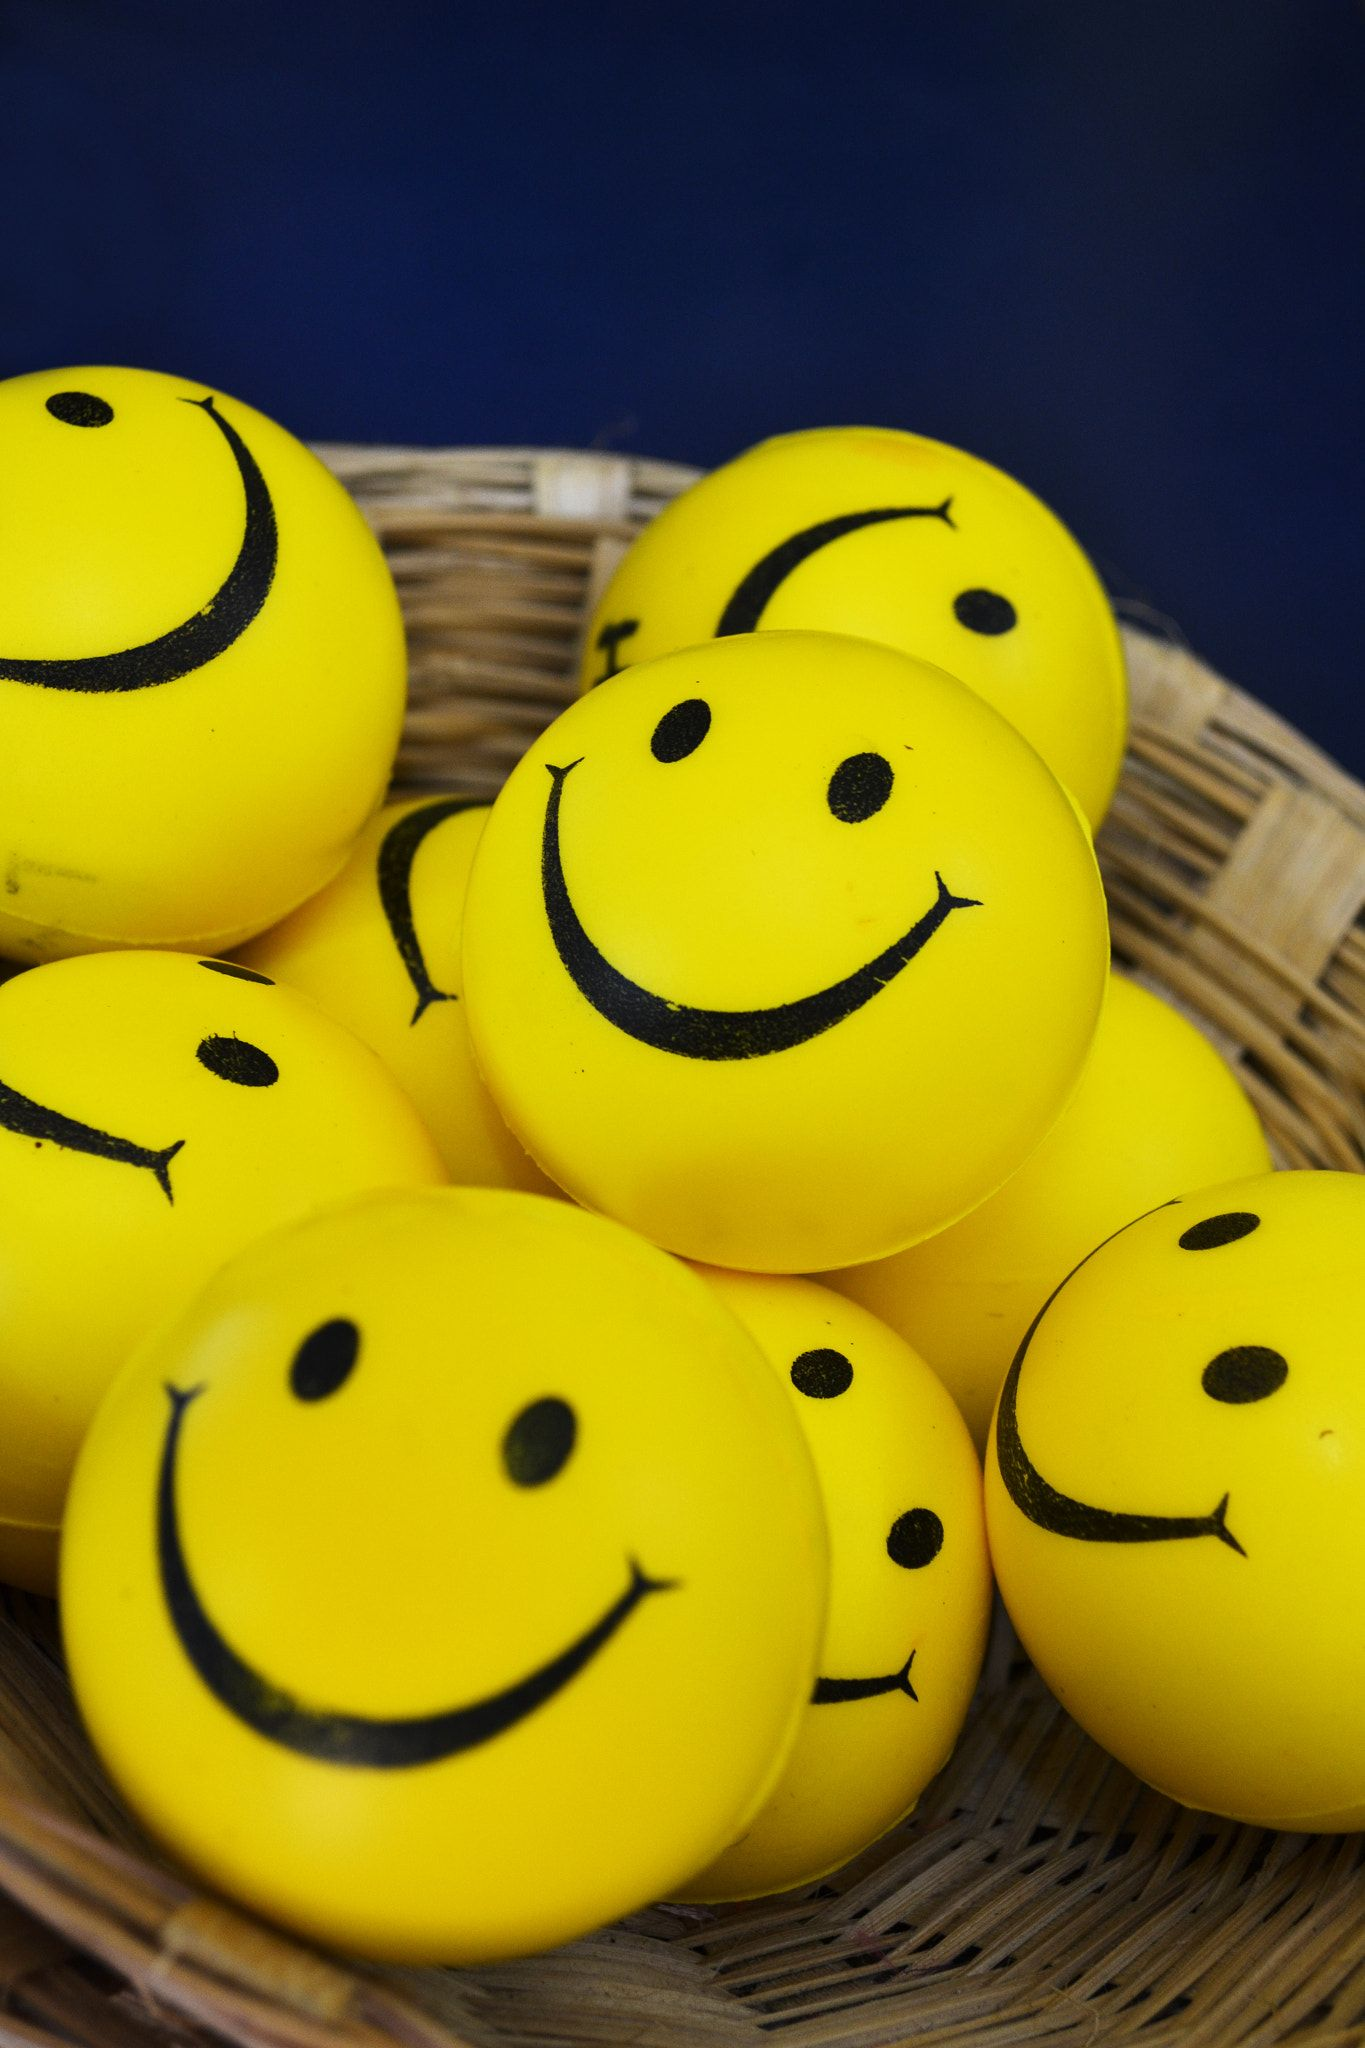 Smiley S Bright Yellow Smileys On A Basket Ready To Make Your Day In 2021 Whatsapp Dp Images Cute Images For Dp Happy Dp